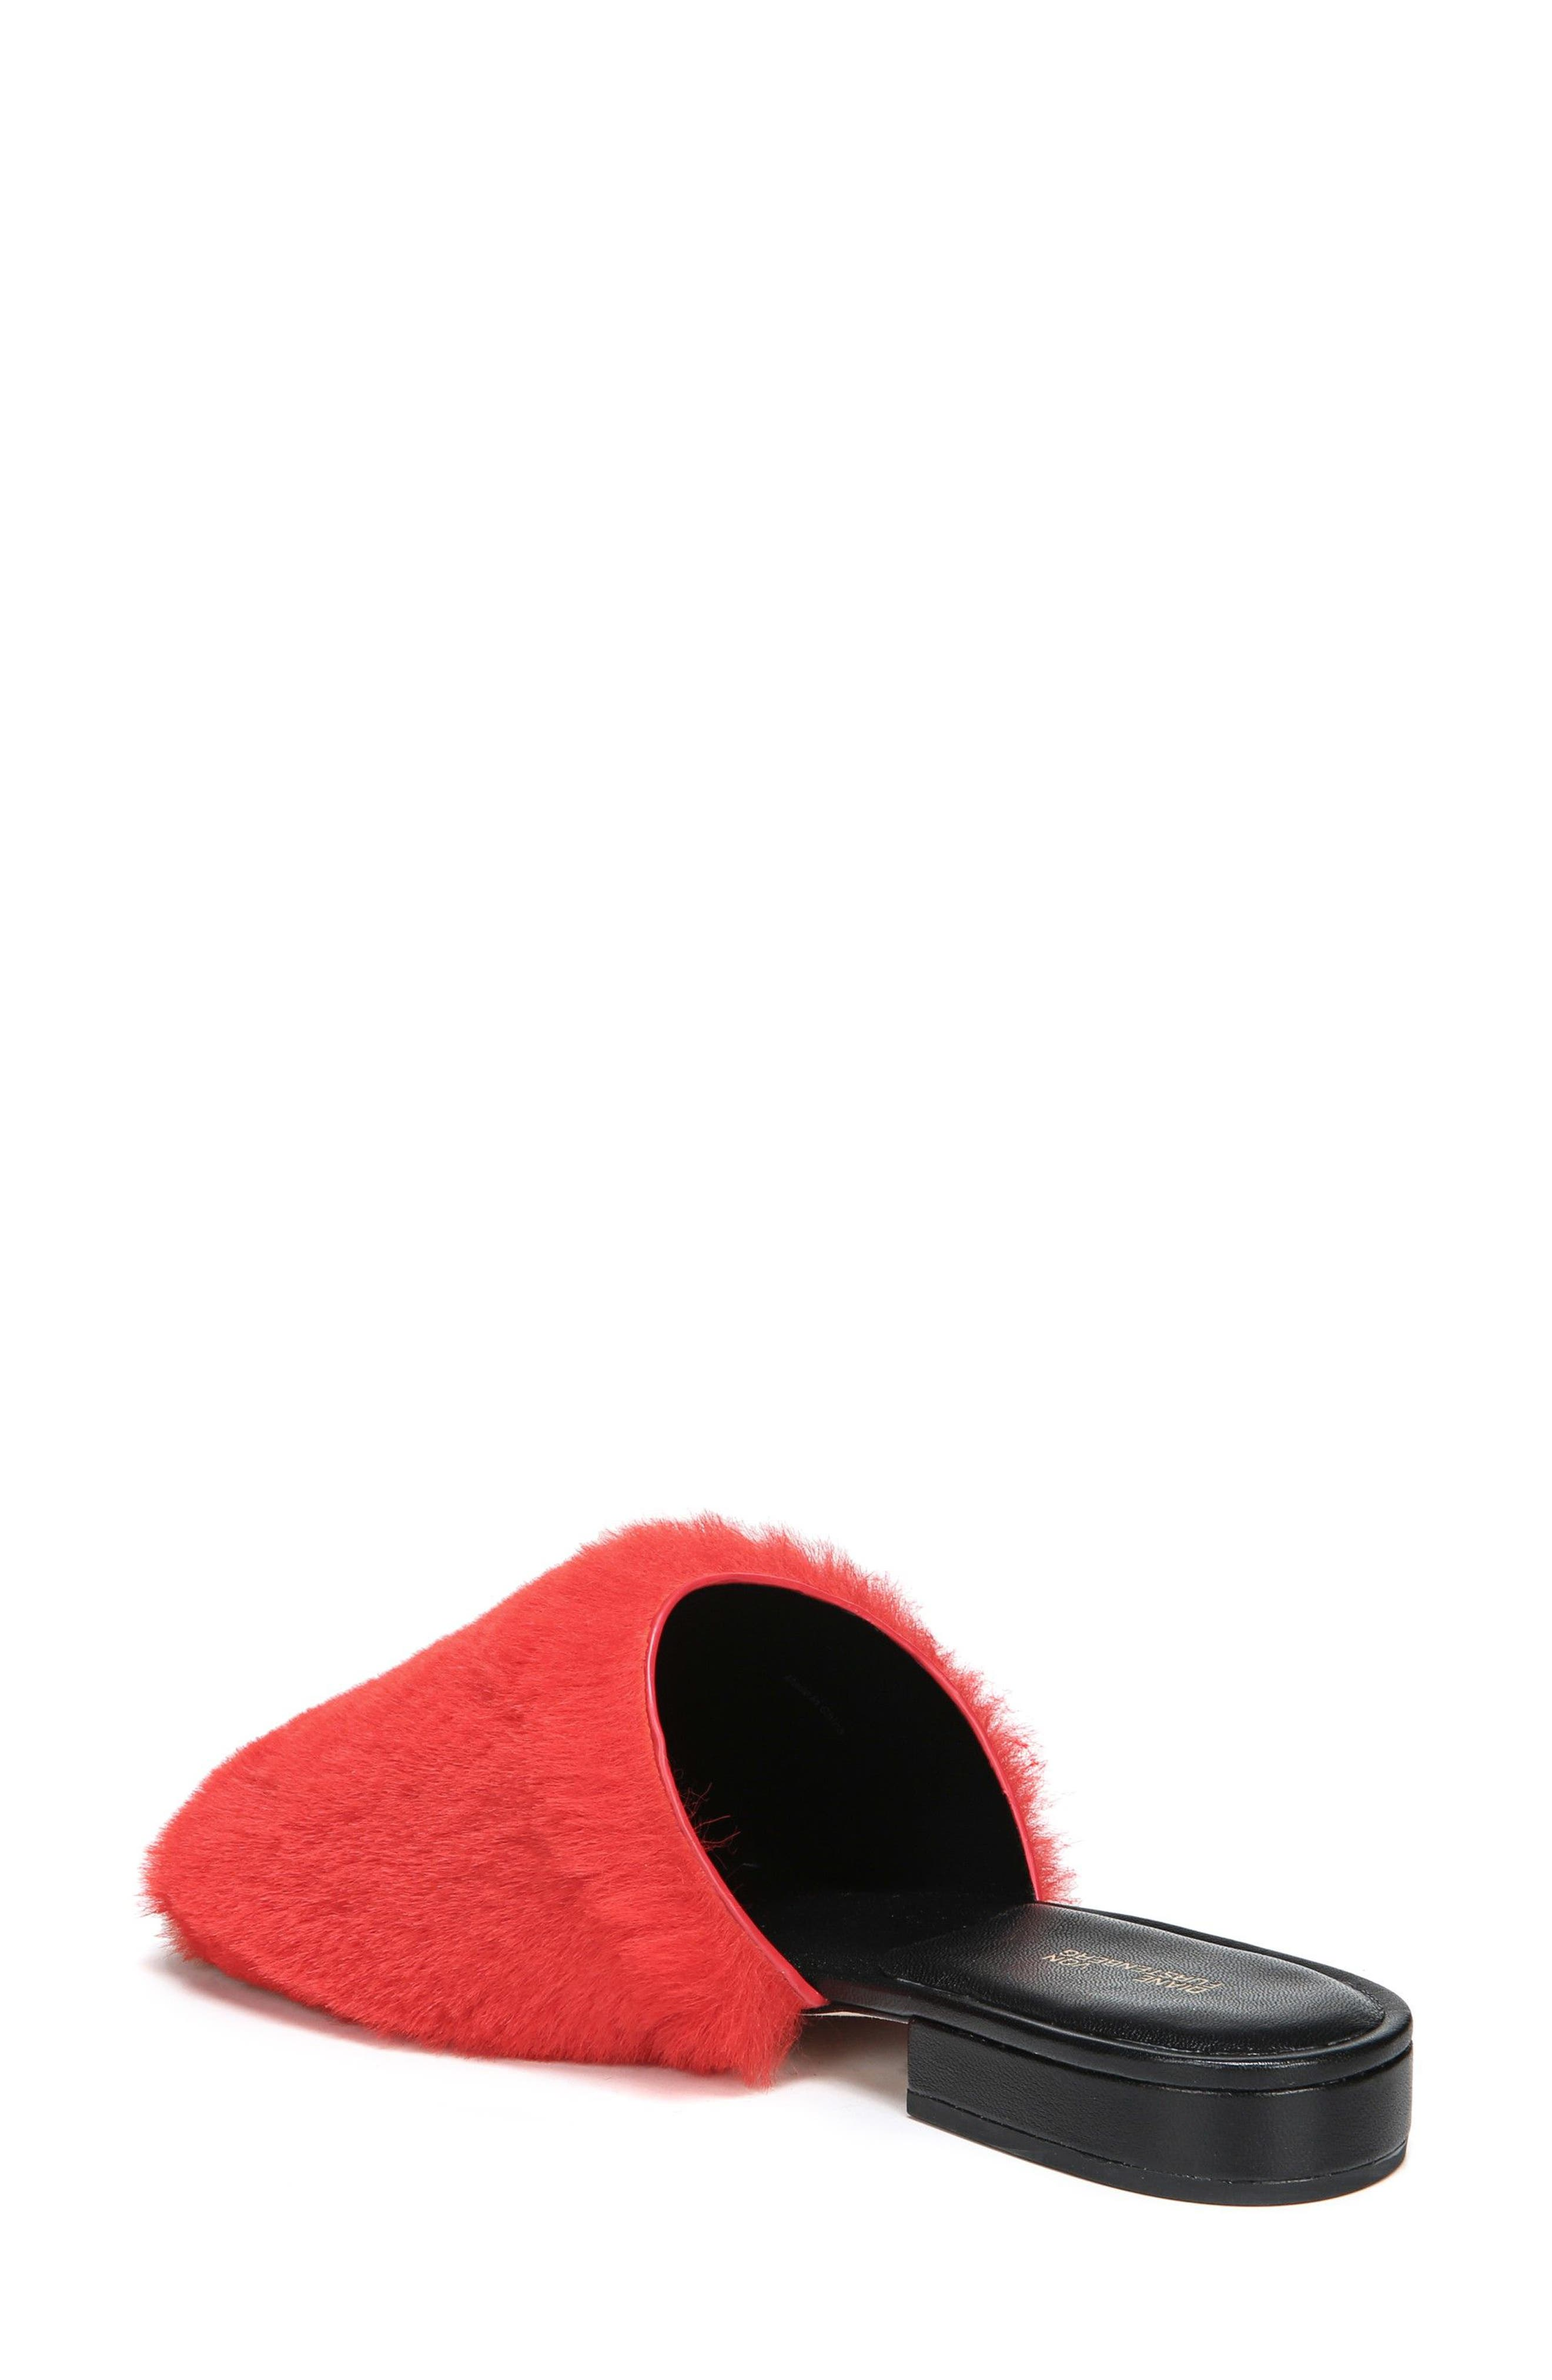 Santi Genuine Shearling Slide Sandal,                             Alternate thumbnail 2, color,                             Red